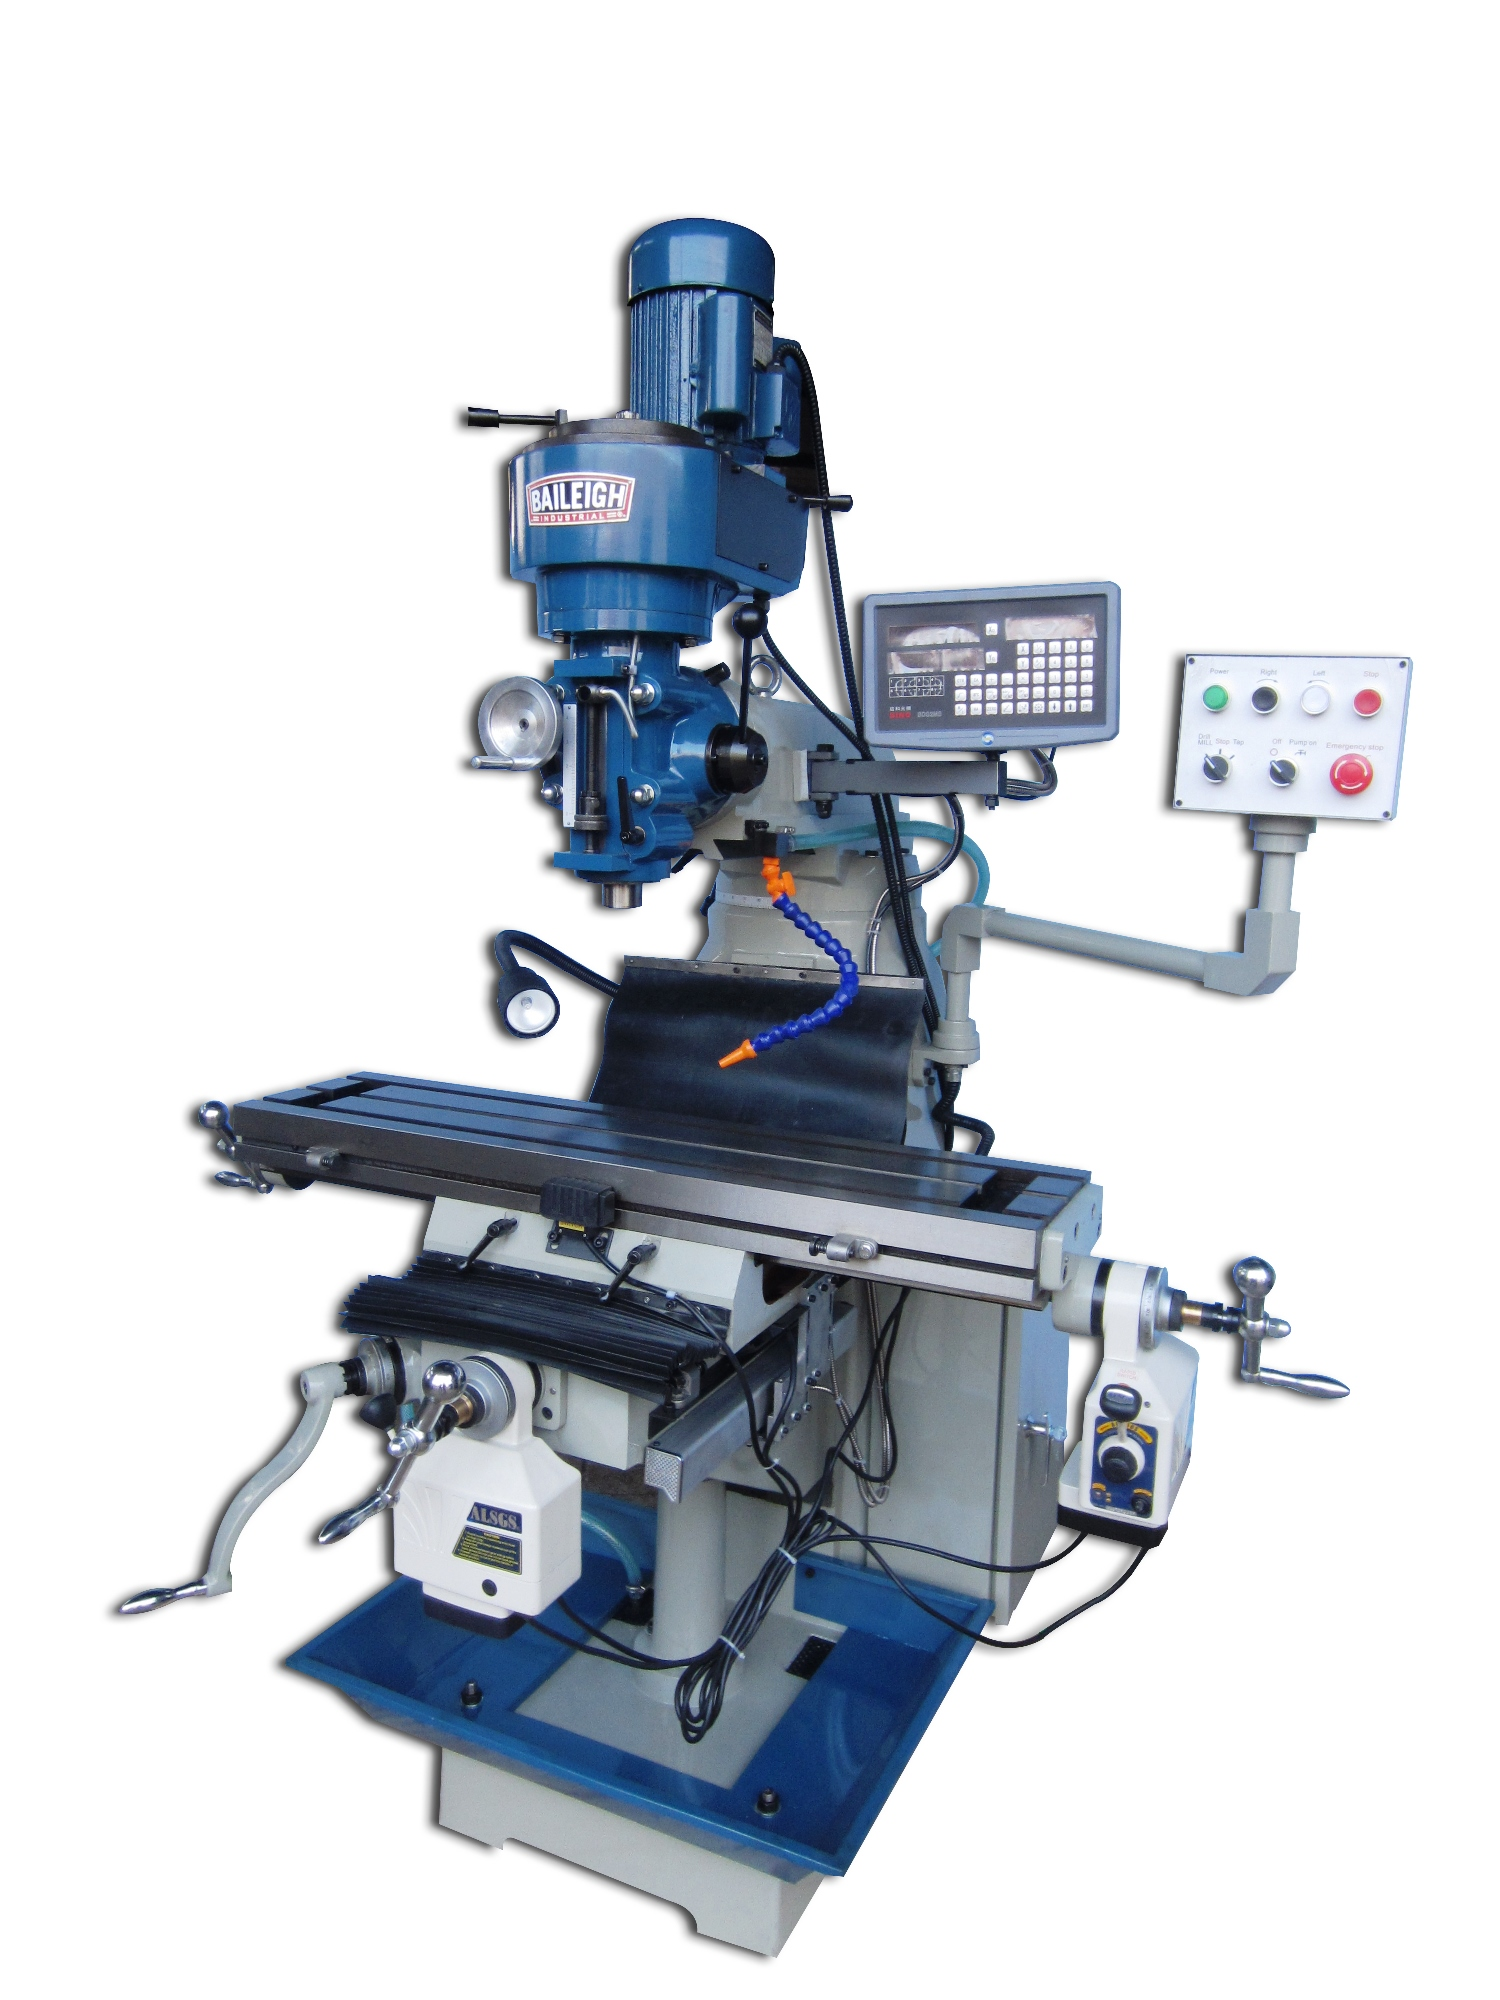 Baileigh Vm 1040e 1 Milling Machine 1009999 Elite Metal